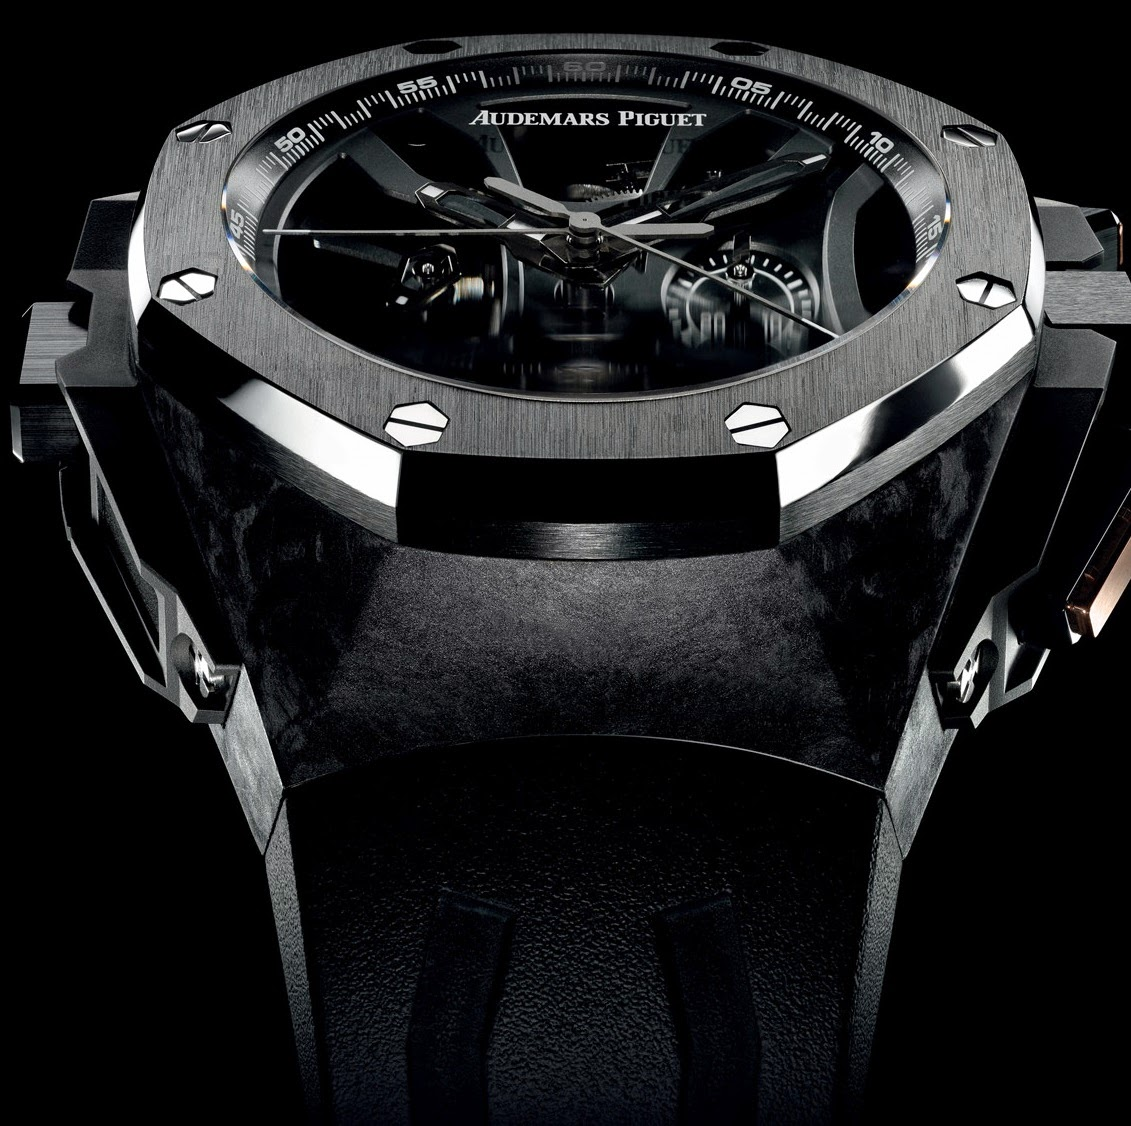 "Top Qaulity Audemars Piguet Royal Oak Concept Laptimer ""Michael Schumacher"" Replica Watch"